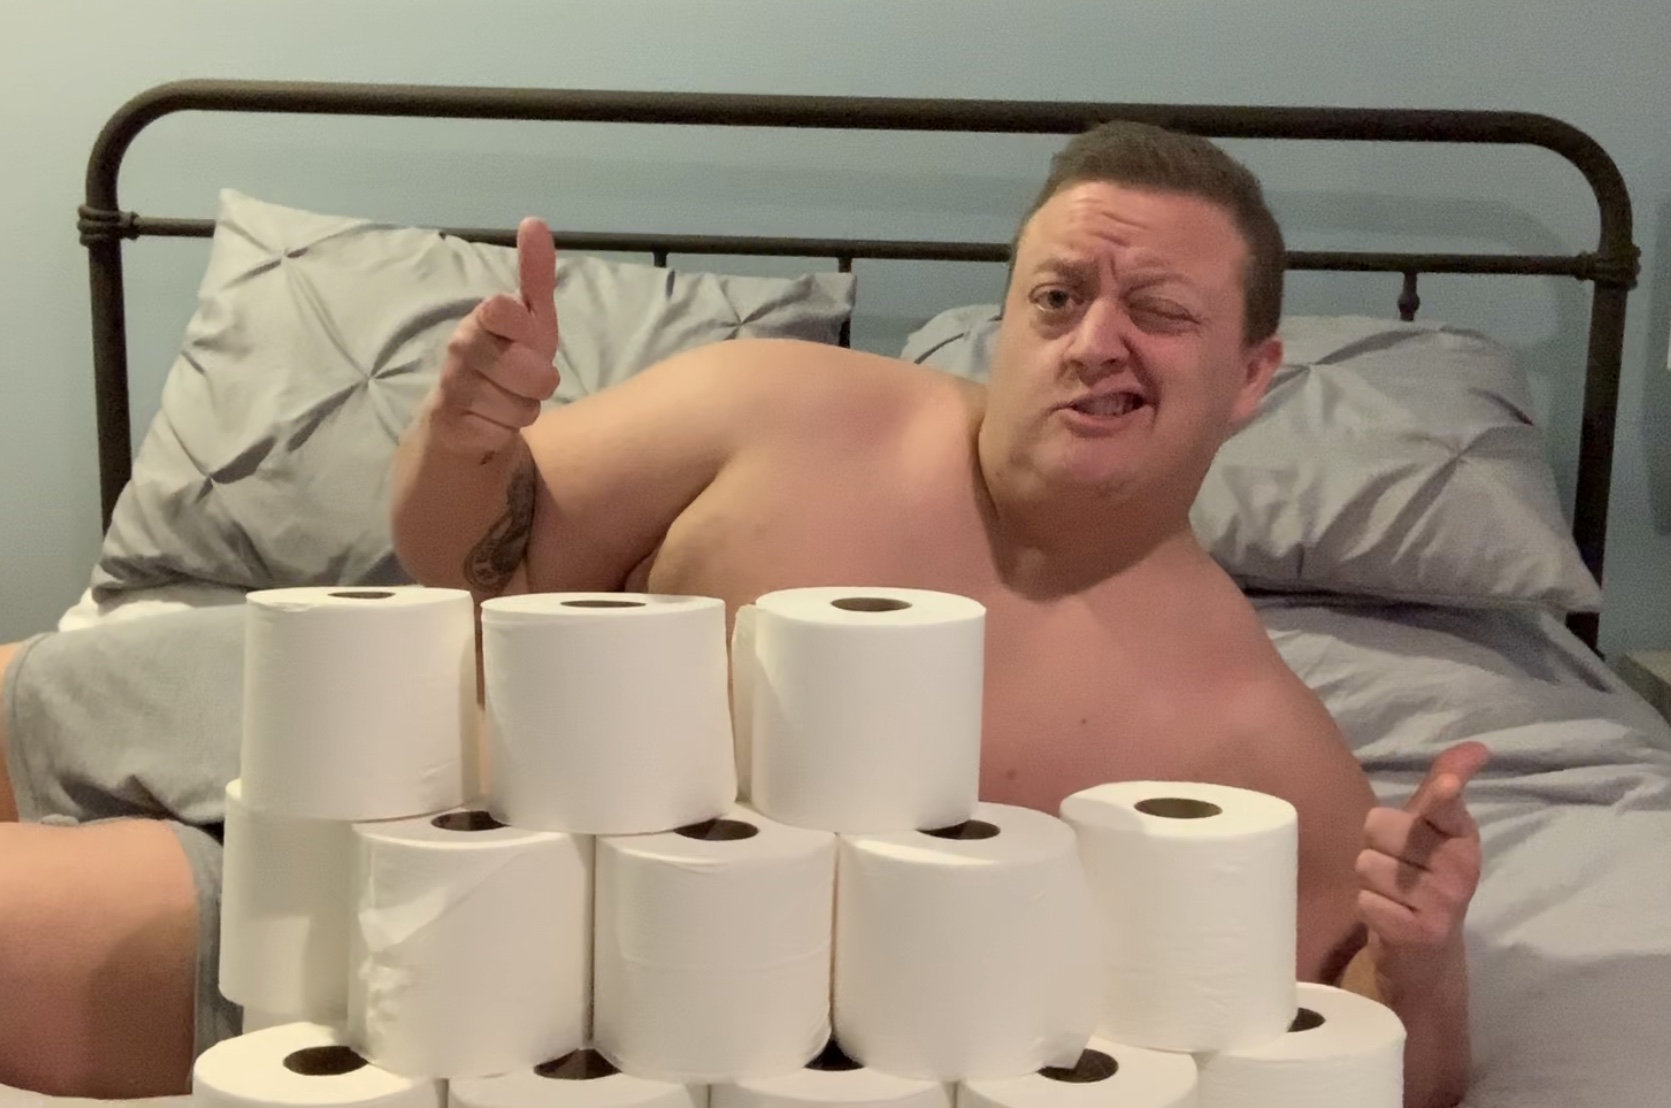 Men Are Measuring Their Penises With Toilet Roll Tubes Ladbible